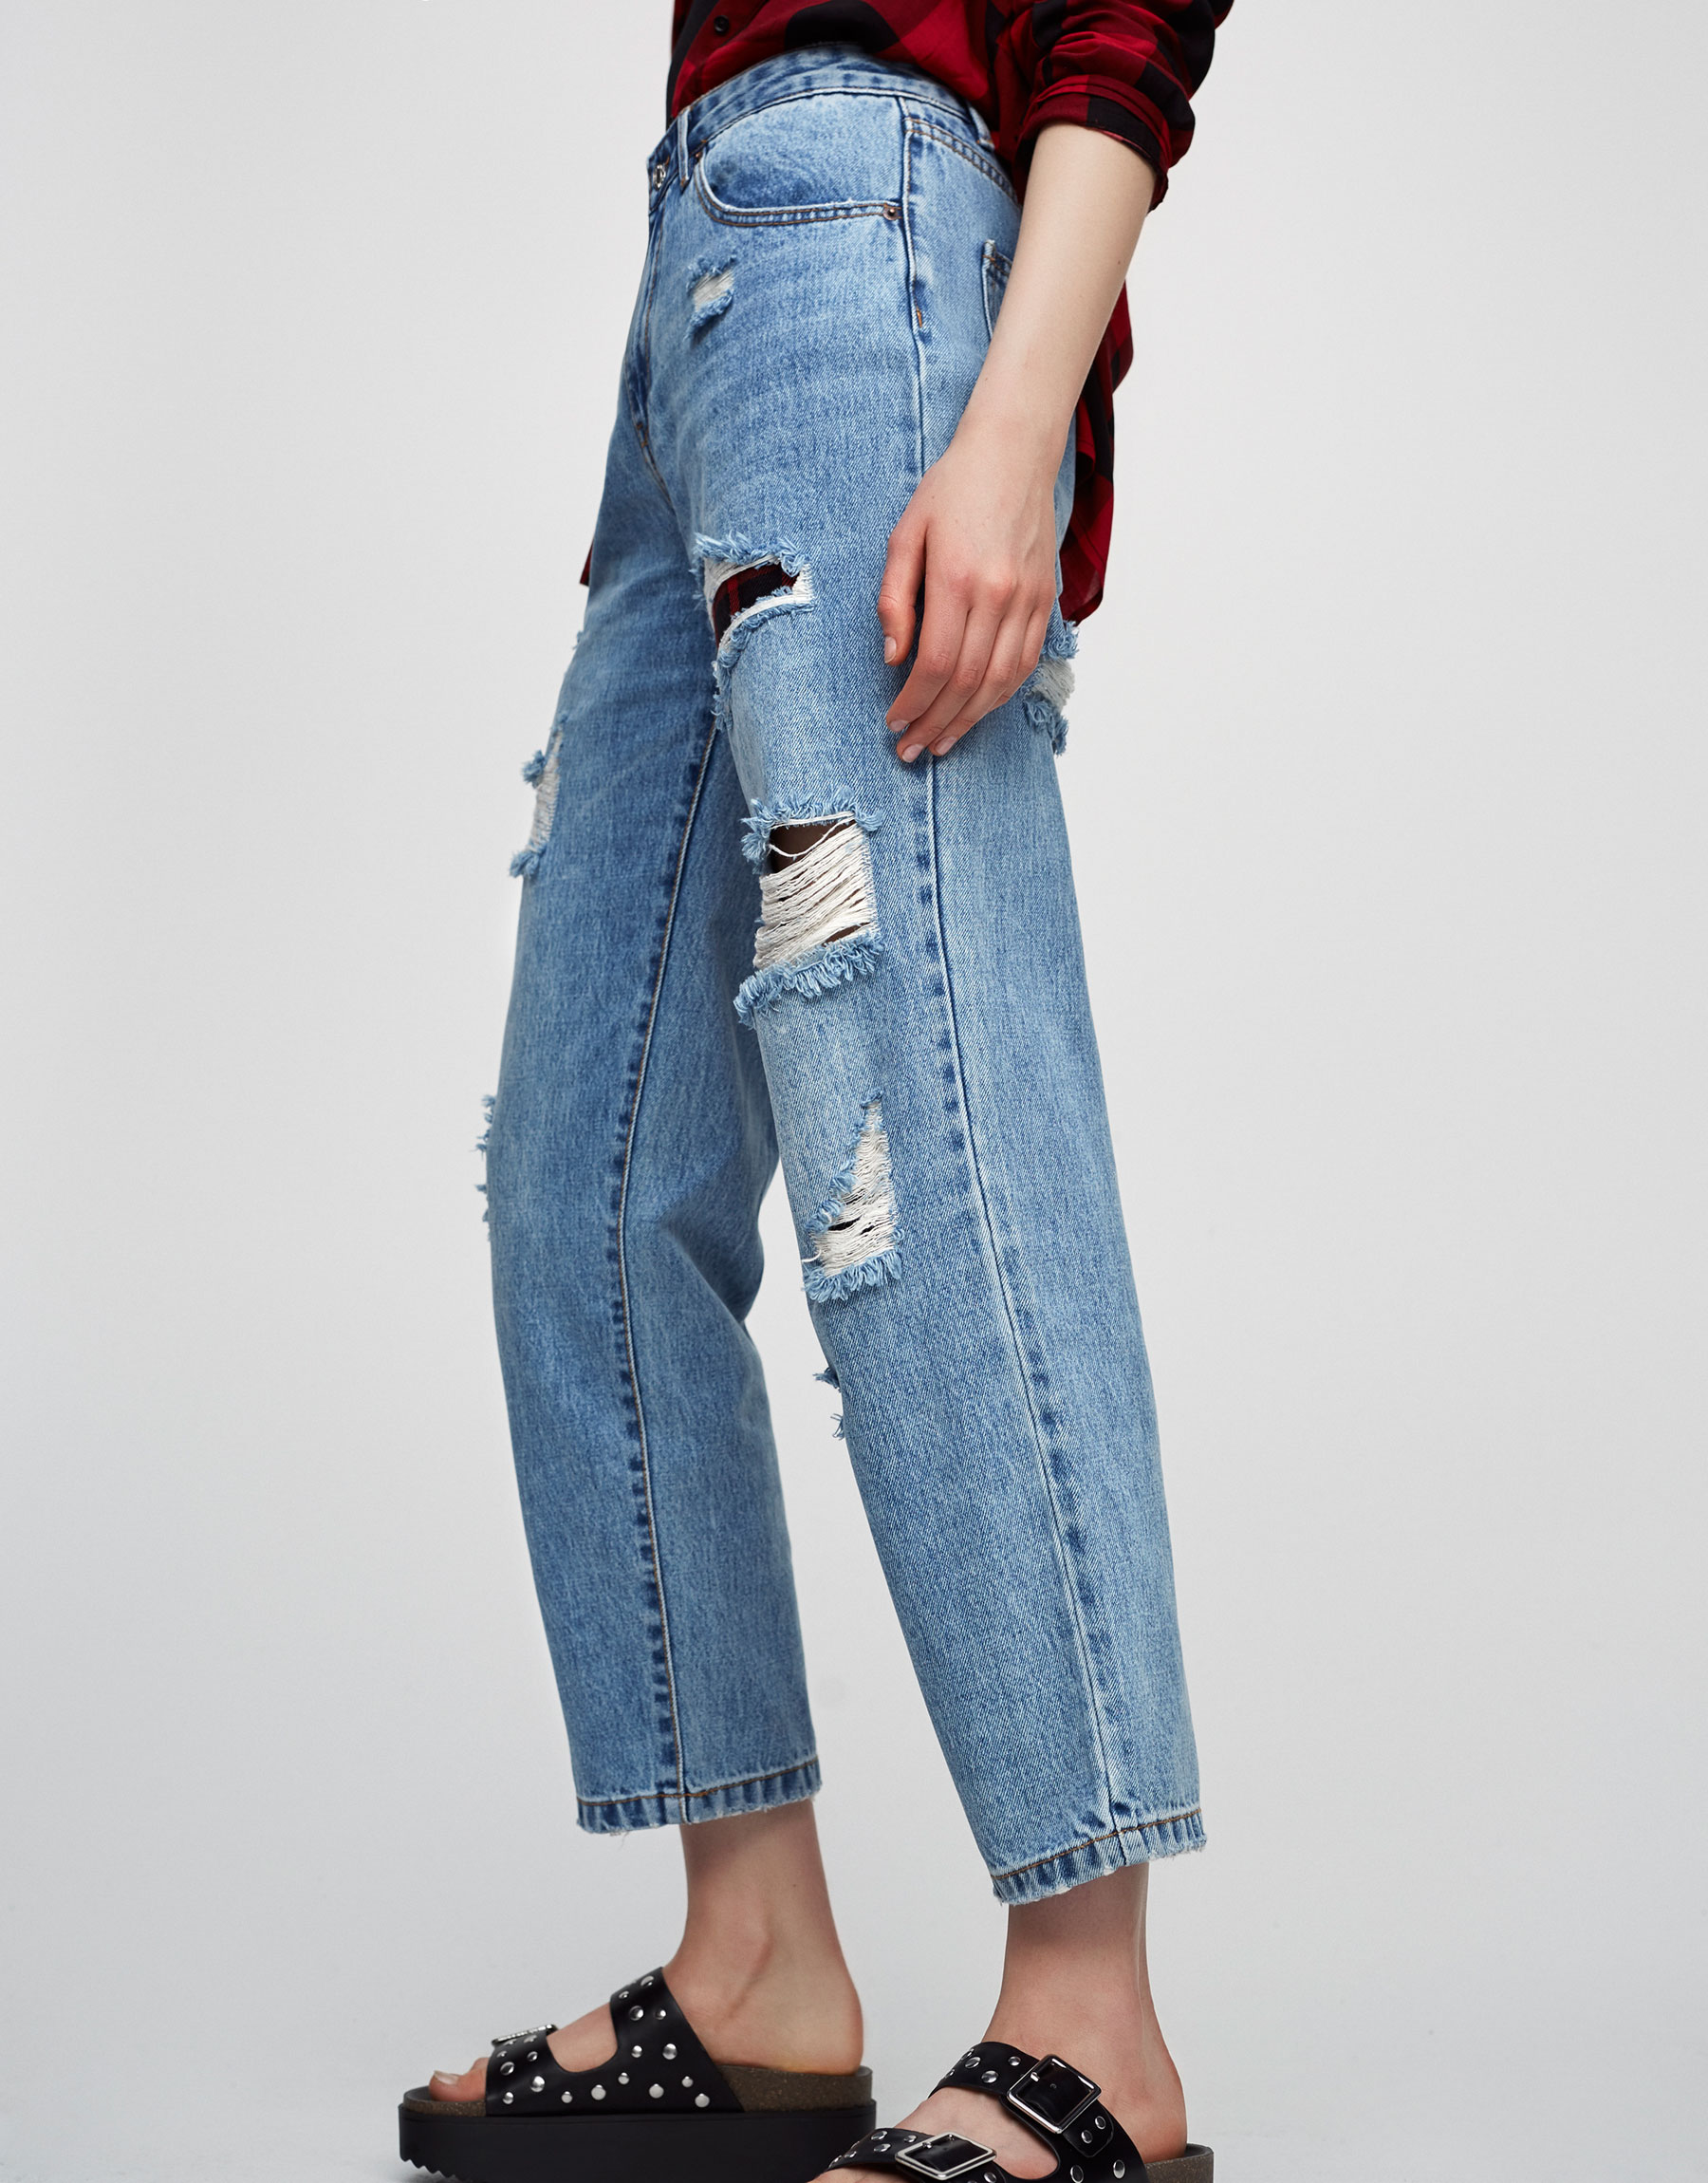 Relaxed fit jeans with rips